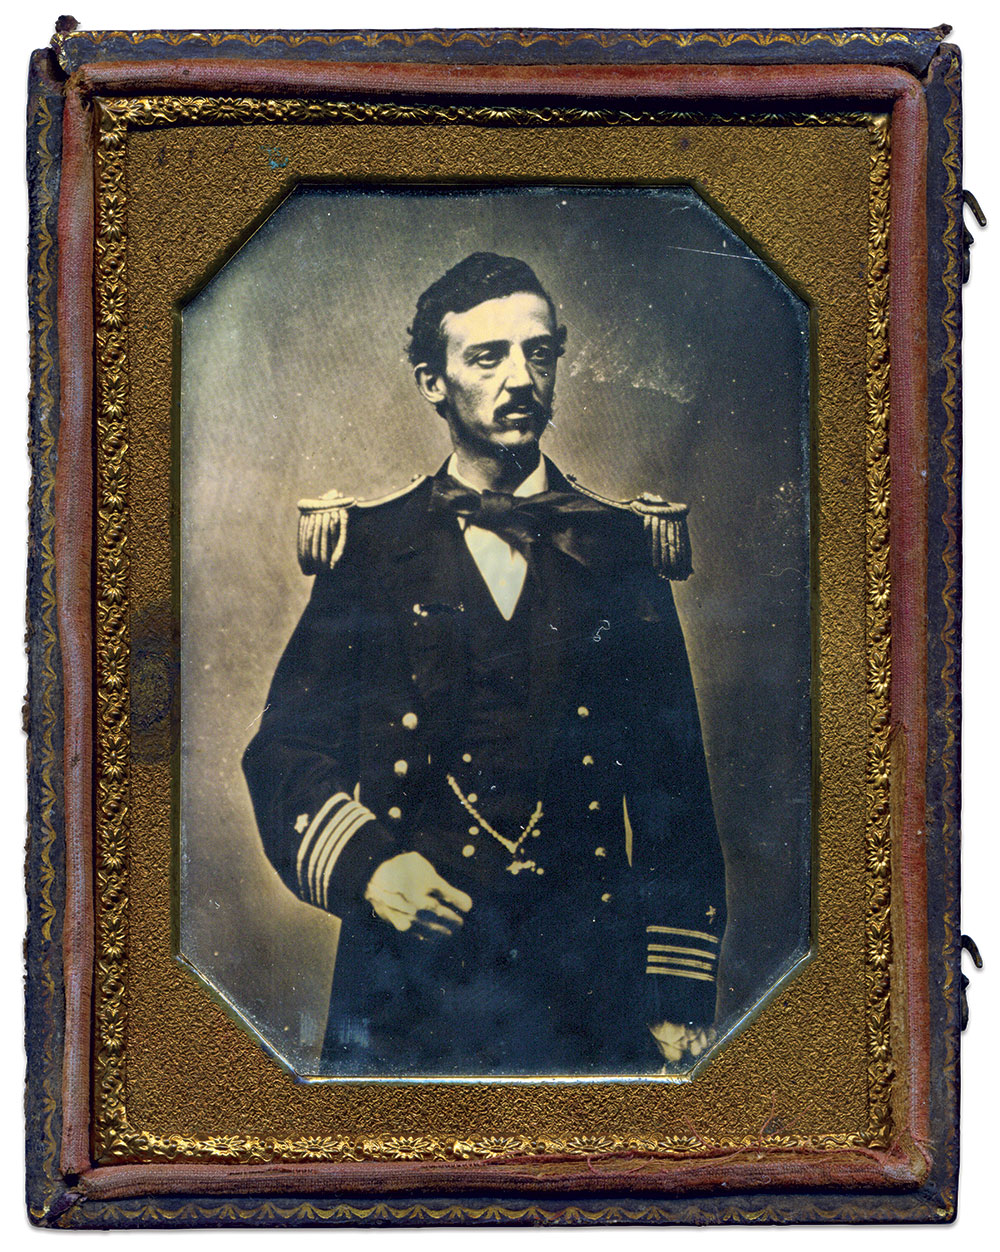 Richard Worsam Meade, U.S. Navy. Quarter-plate tintype by an anonymous photographer. Jim Quinlan Collection.